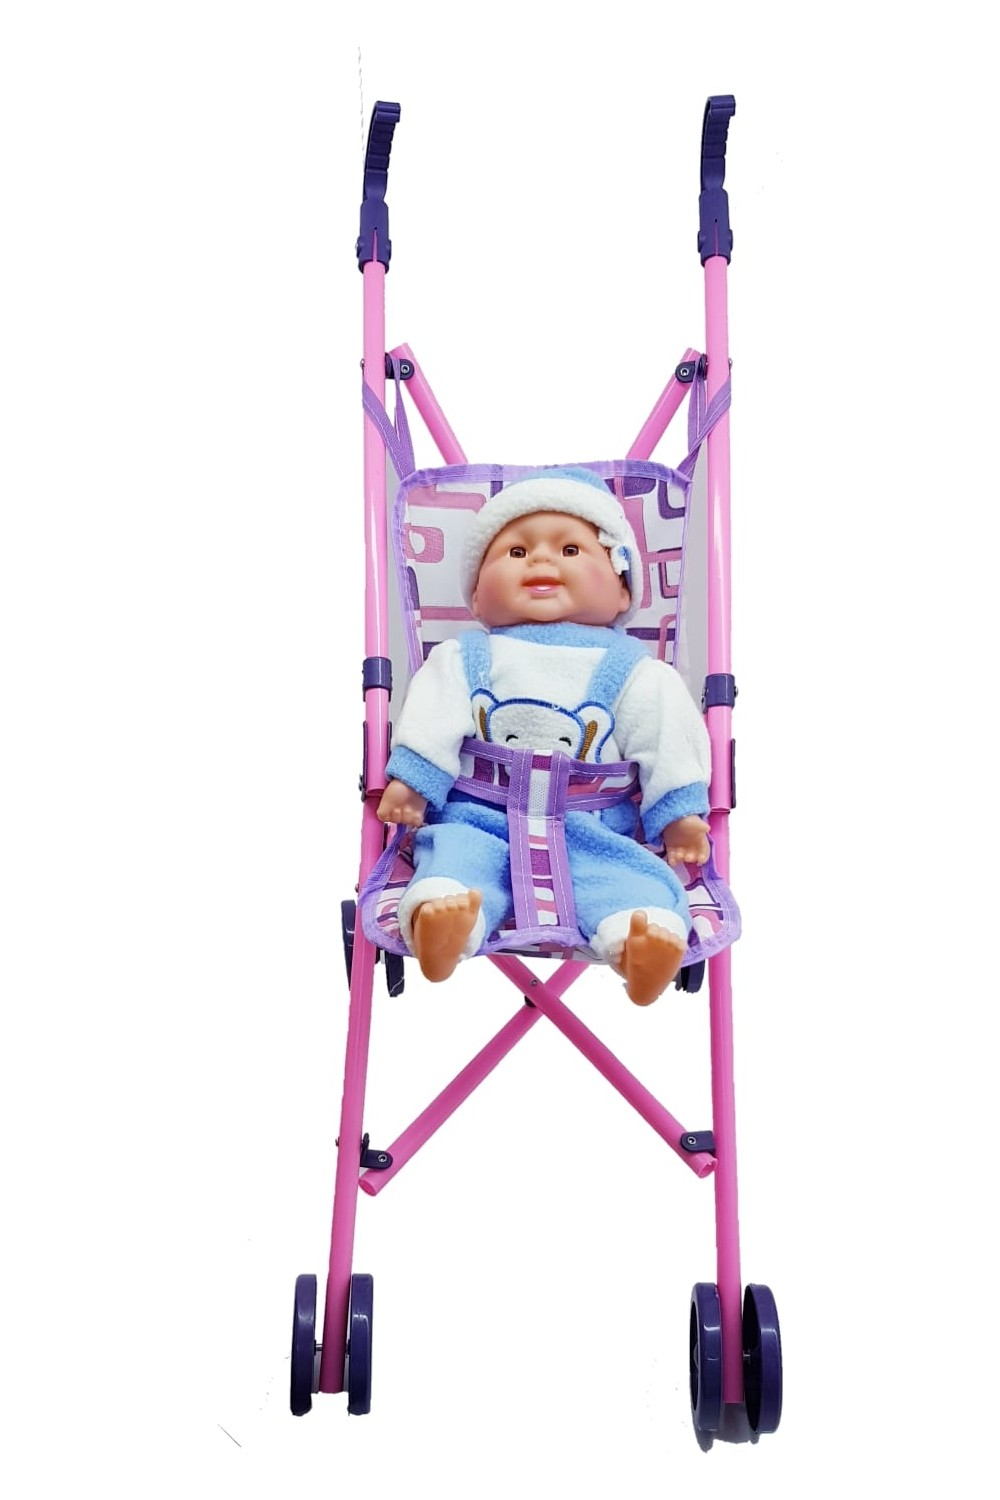 Can Oyuncak Girls' Baby Stroller with Smiley Doll